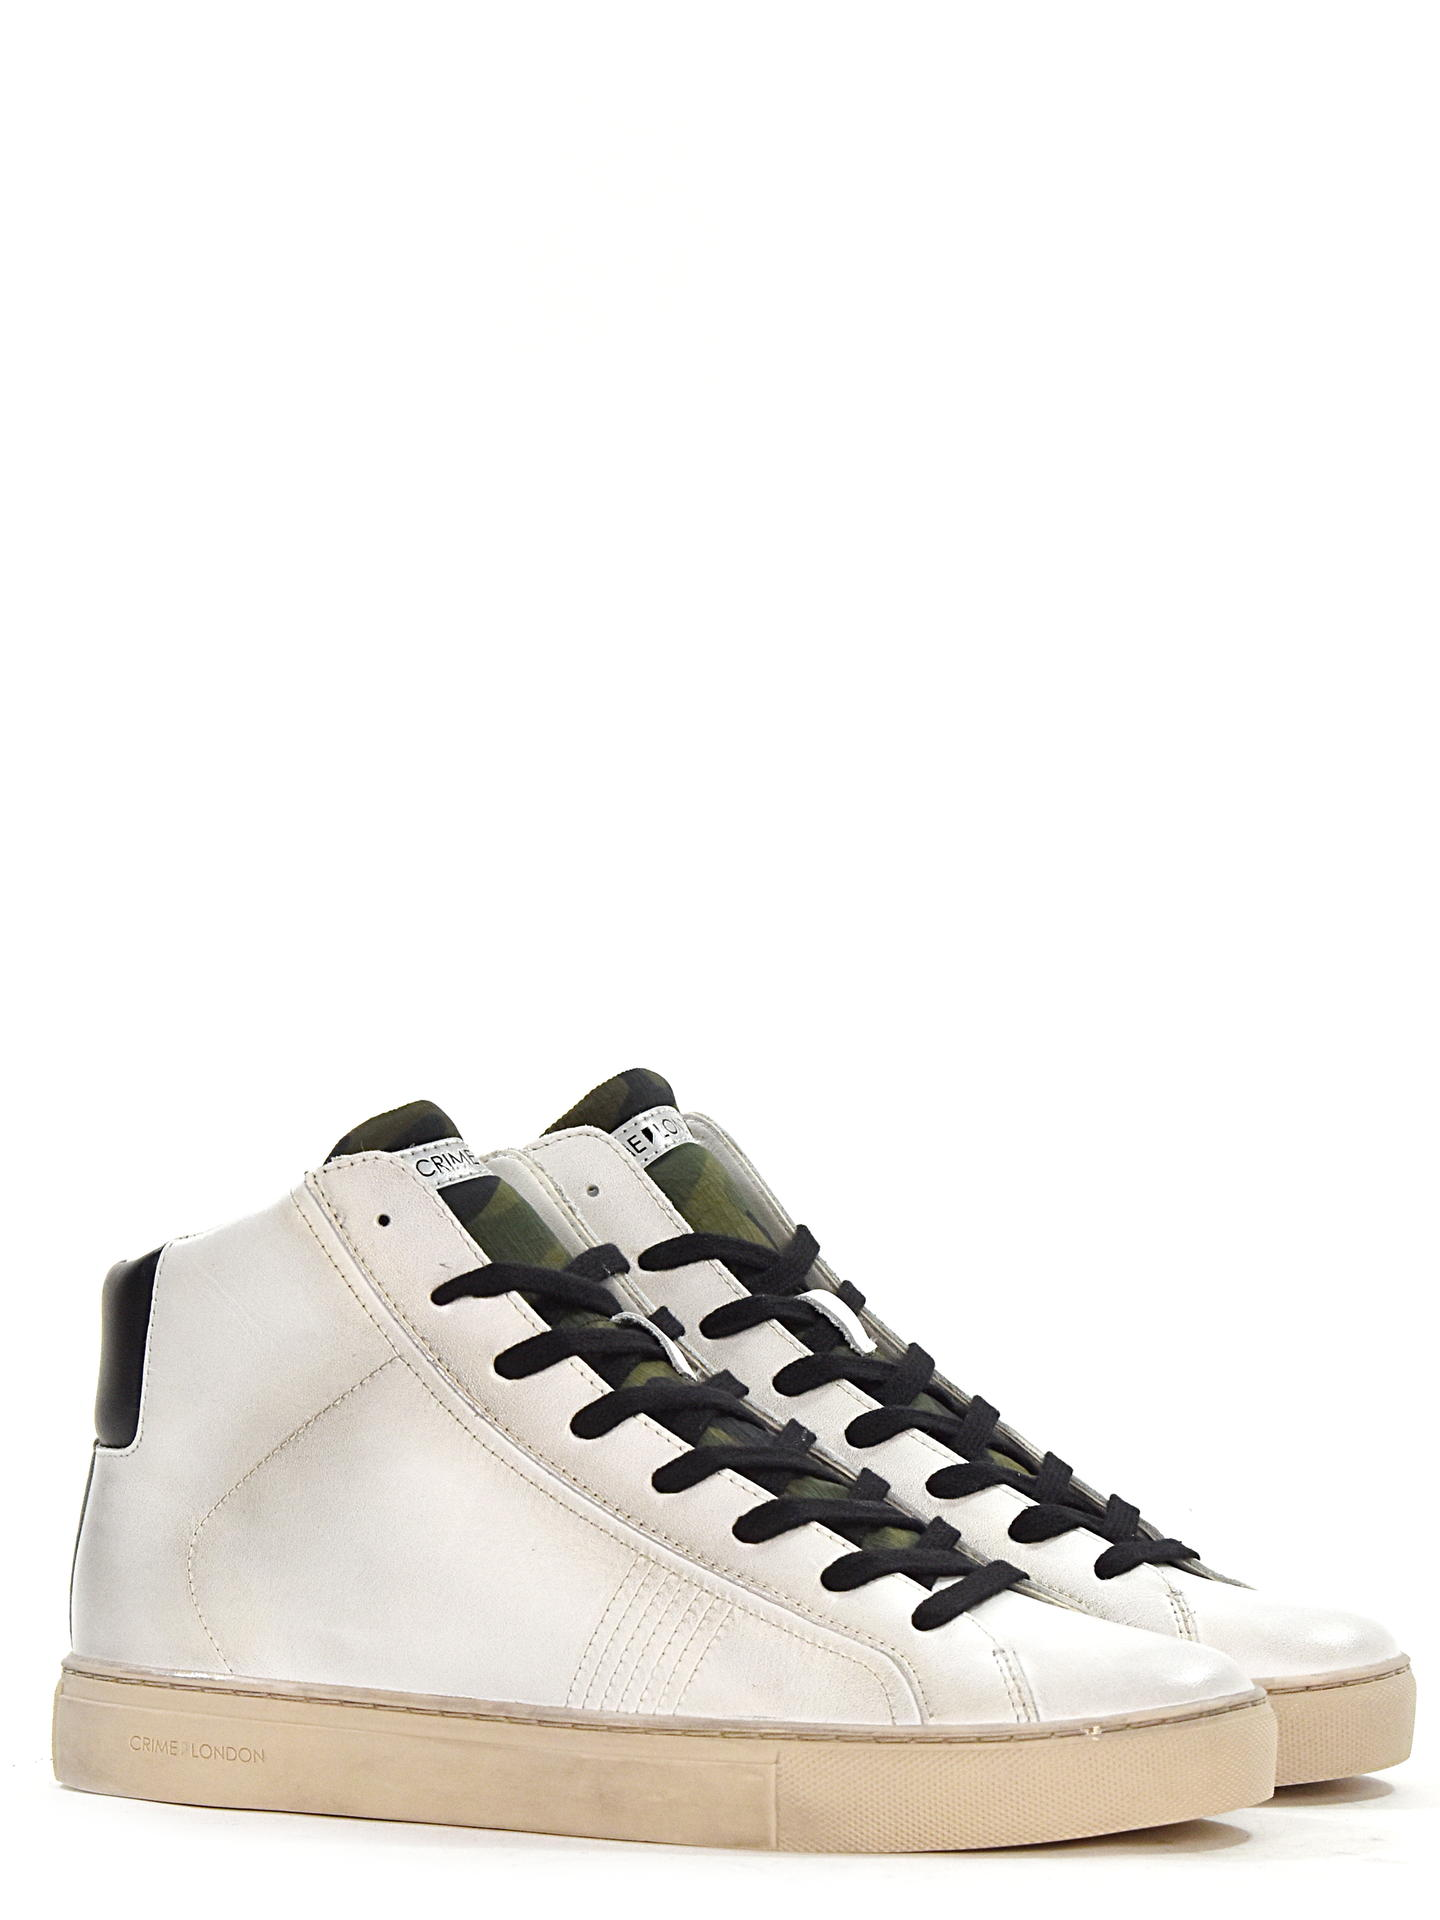 SNEAKERS CRIME LONDON 11656 BIANCO